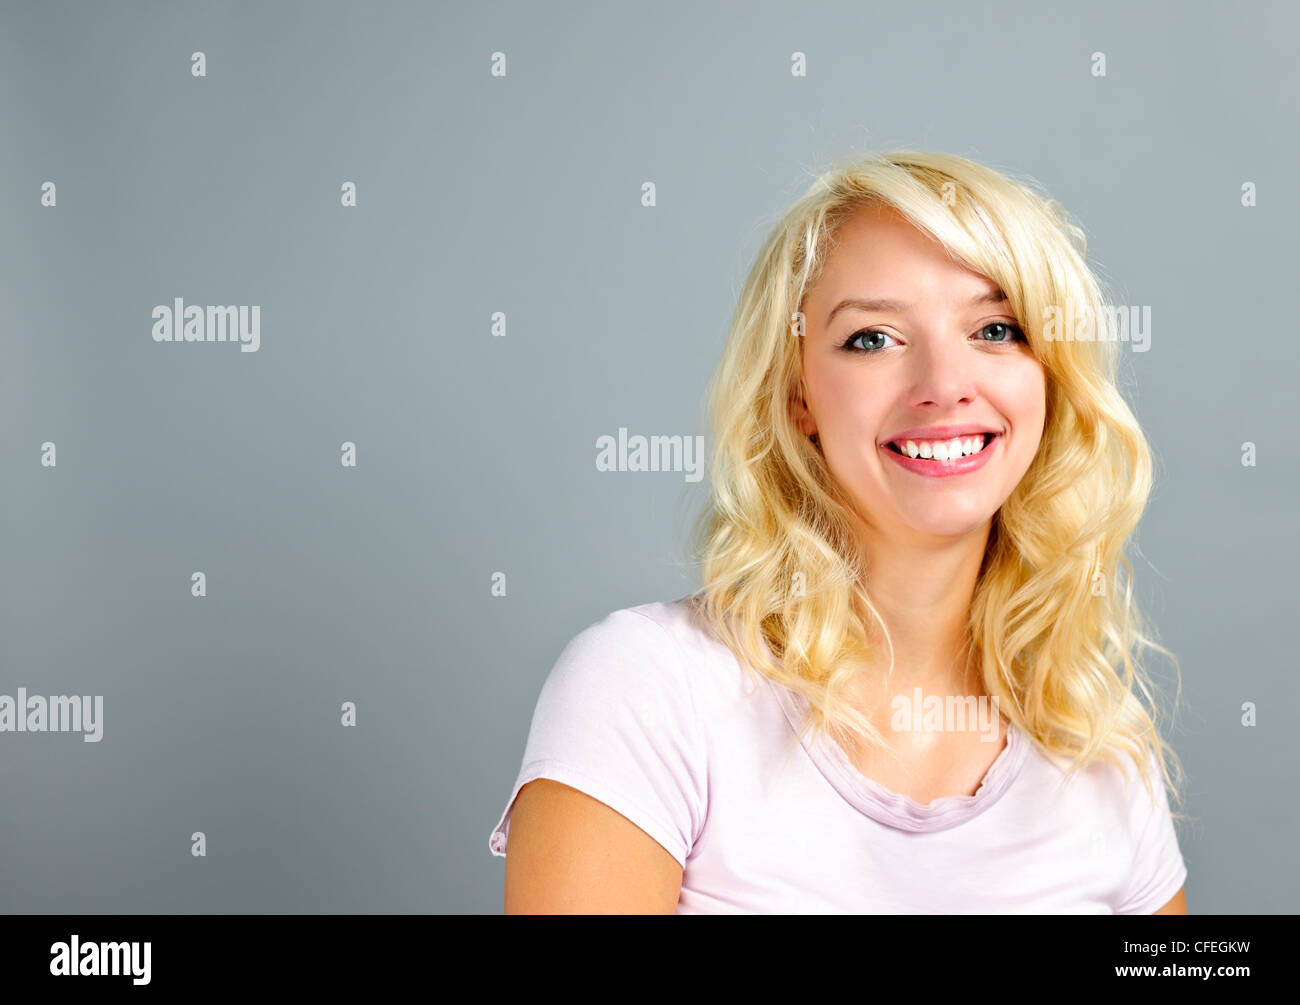 Portrait of smiling young blonde caucasian woman on grey background - Stock Image